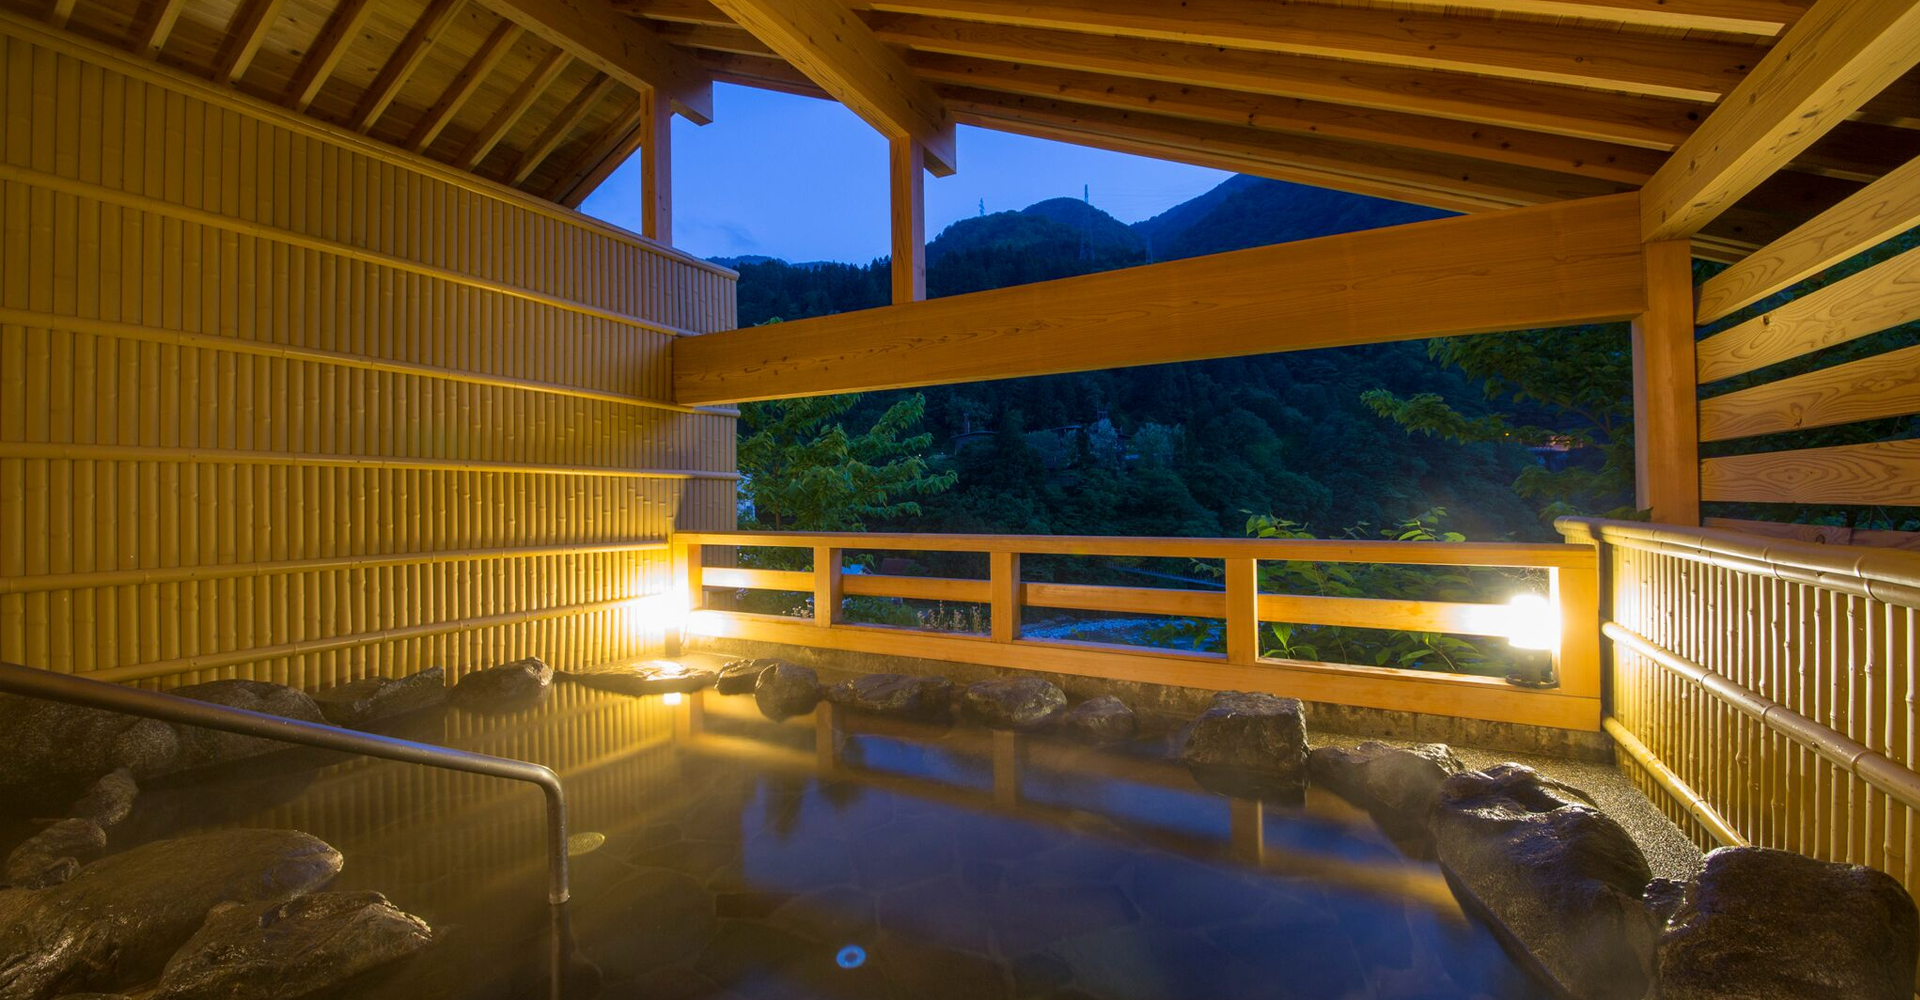 A hot-spring resort offering fine food and hospitality San'Yanagatei